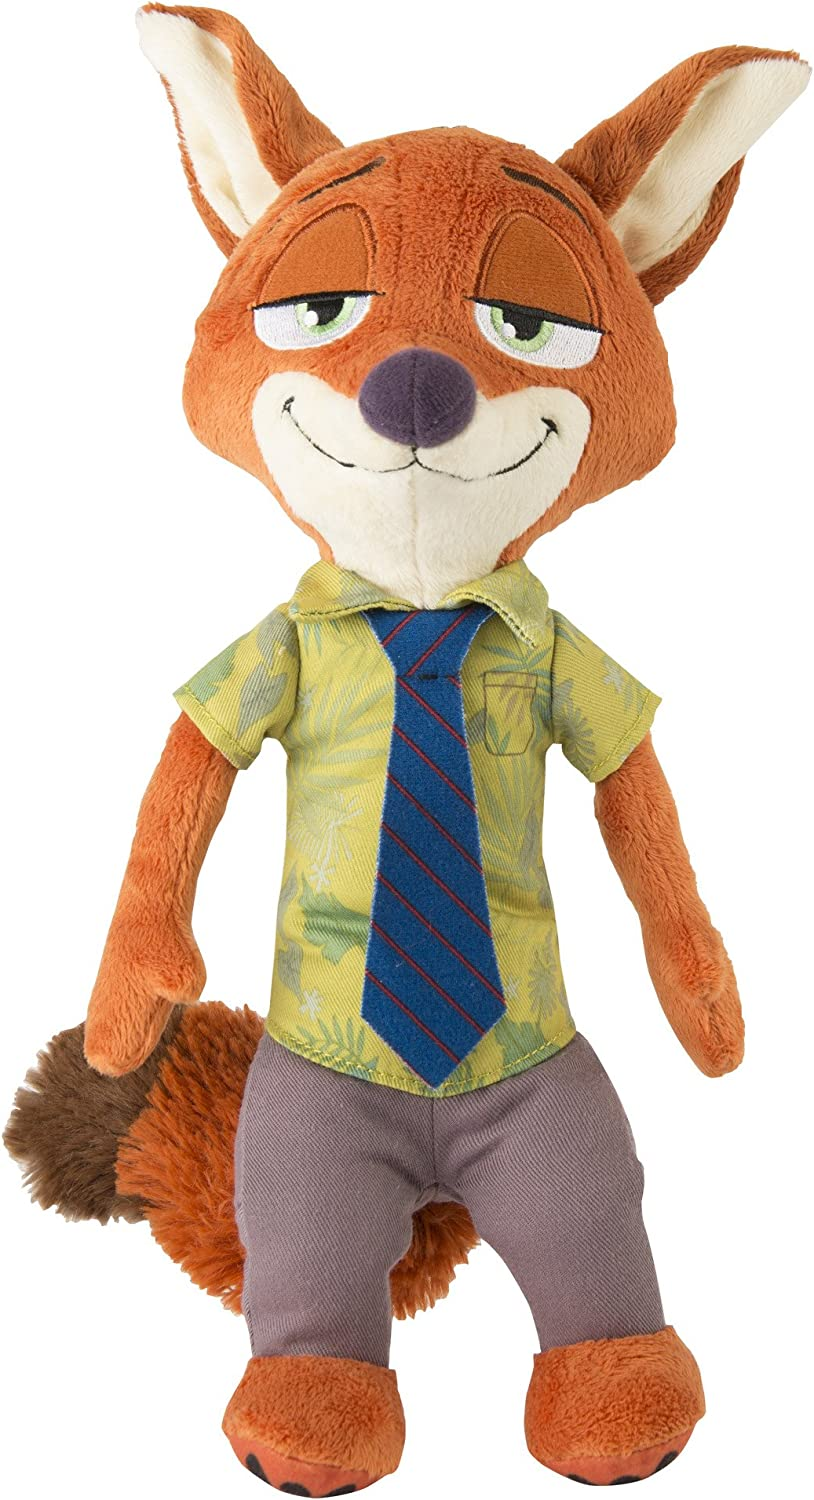 New arrival Zootopia Talking Plush Nick 2021new shipping free shipping Wilde